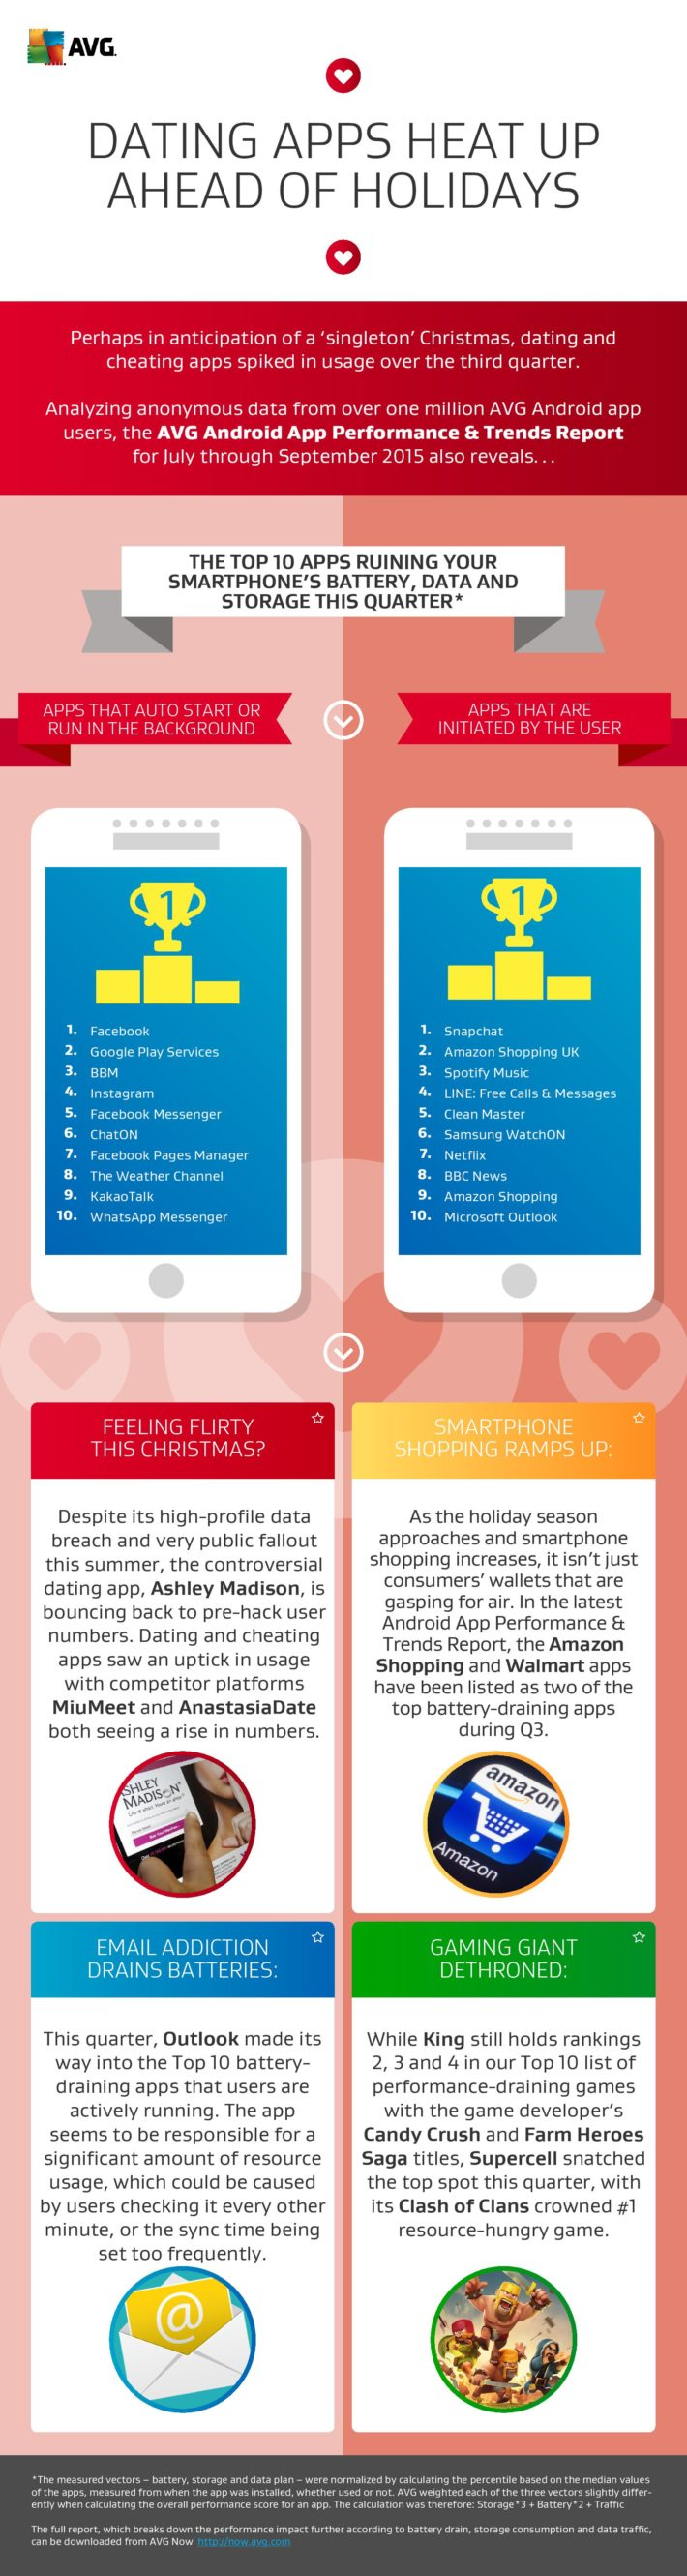 AVG_Q3 APP REPORT INFOGRAPHIC_FINAL-page-001